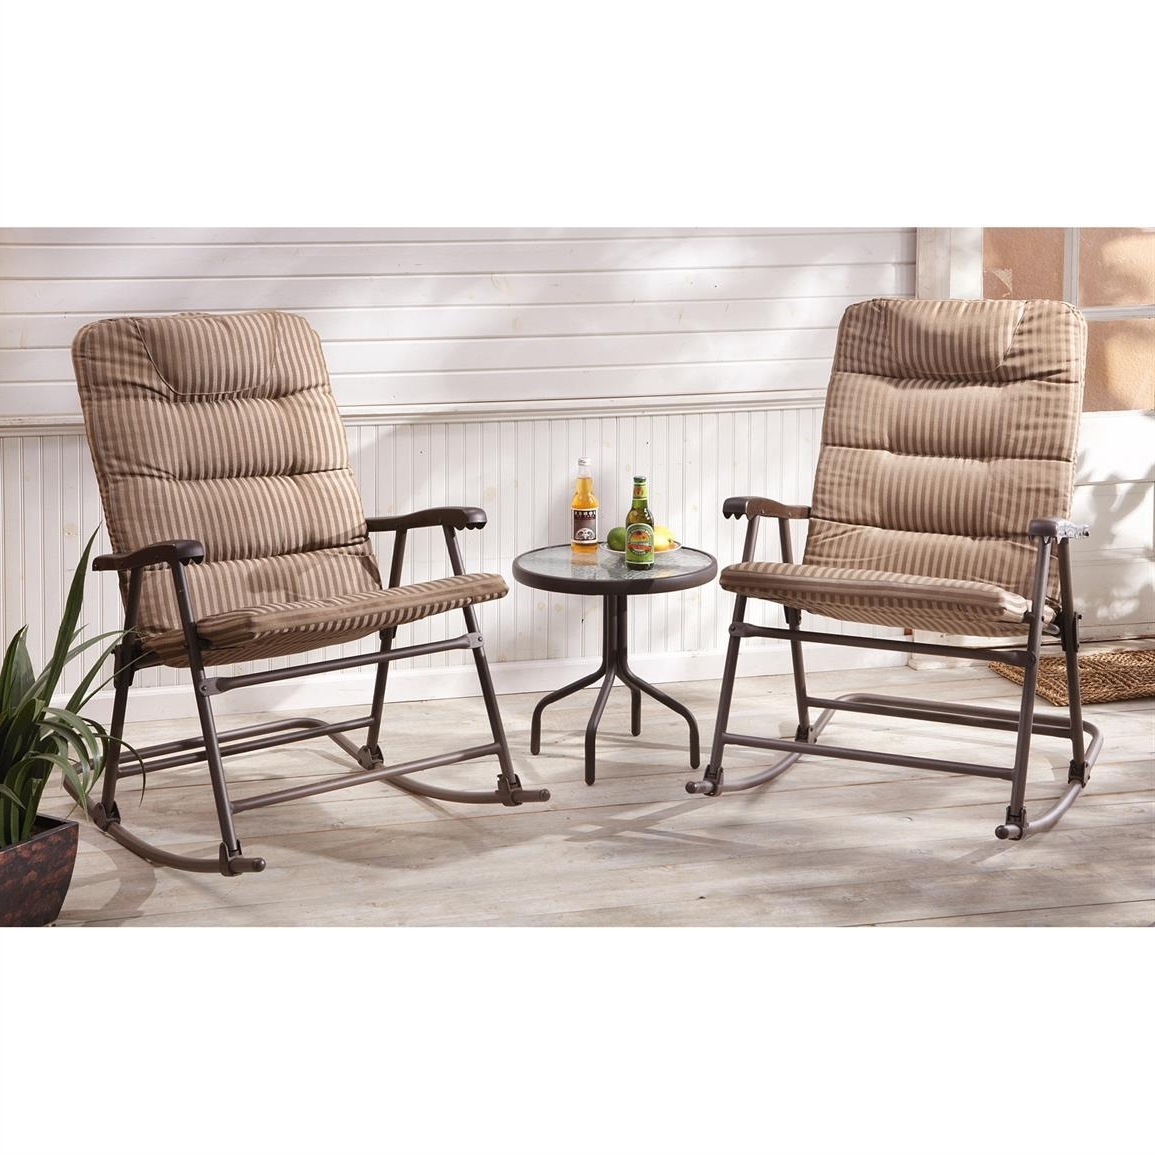 Patio Rocking Chairs Sets Regarding 2018 Castlecreek Padded Outdoor Rocking Chair Set Piece Setup Patio (View 16 of 20)